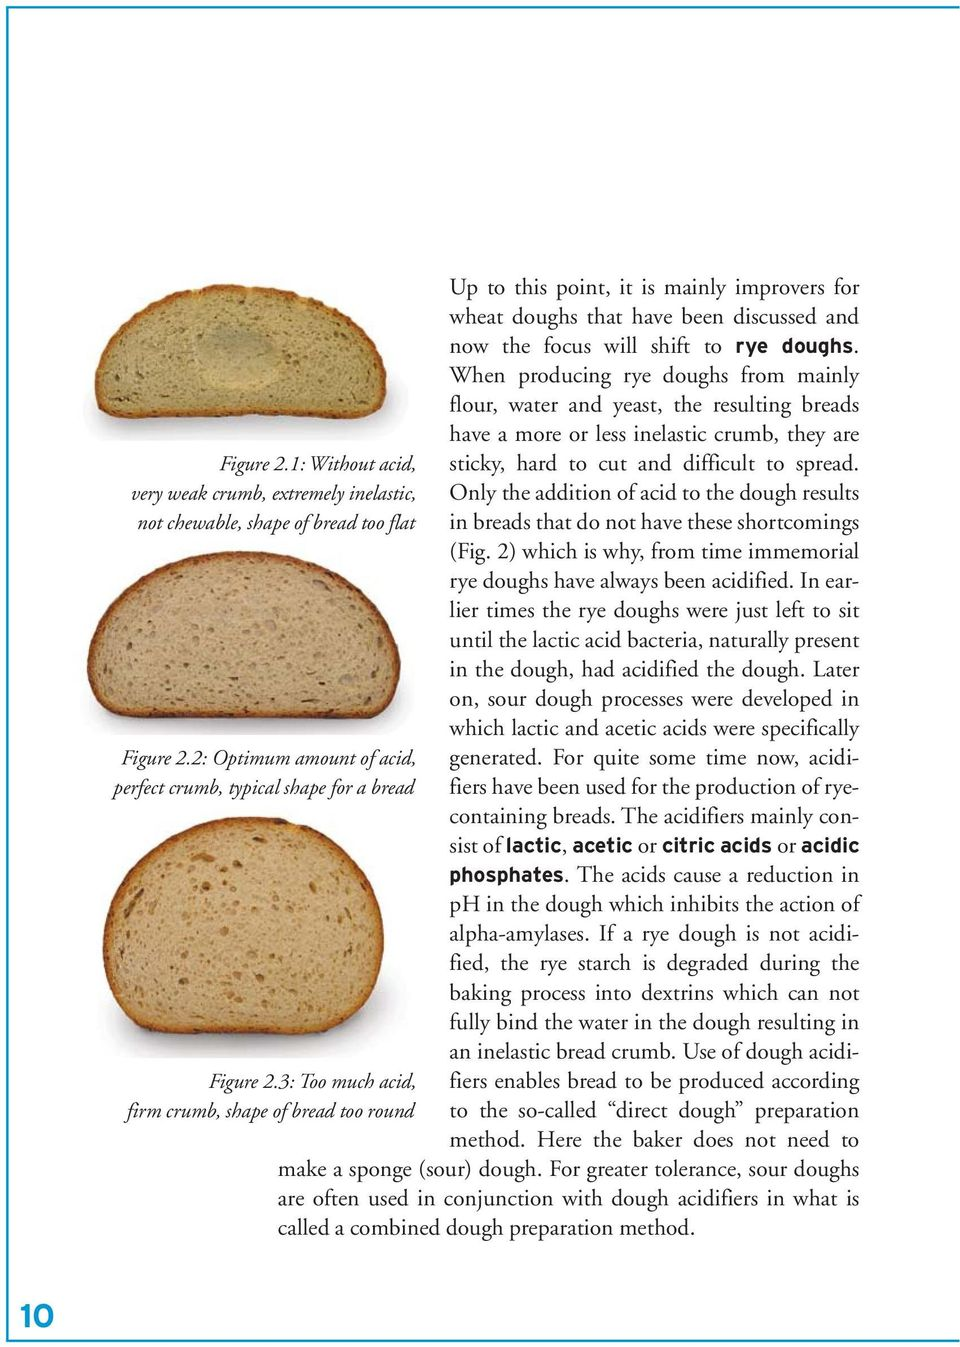 Only the addition of acid to the dough results in breads that do not have these shortcomings (Fig. 2) which is why, from time immemorial rye doughs have always been acidified.